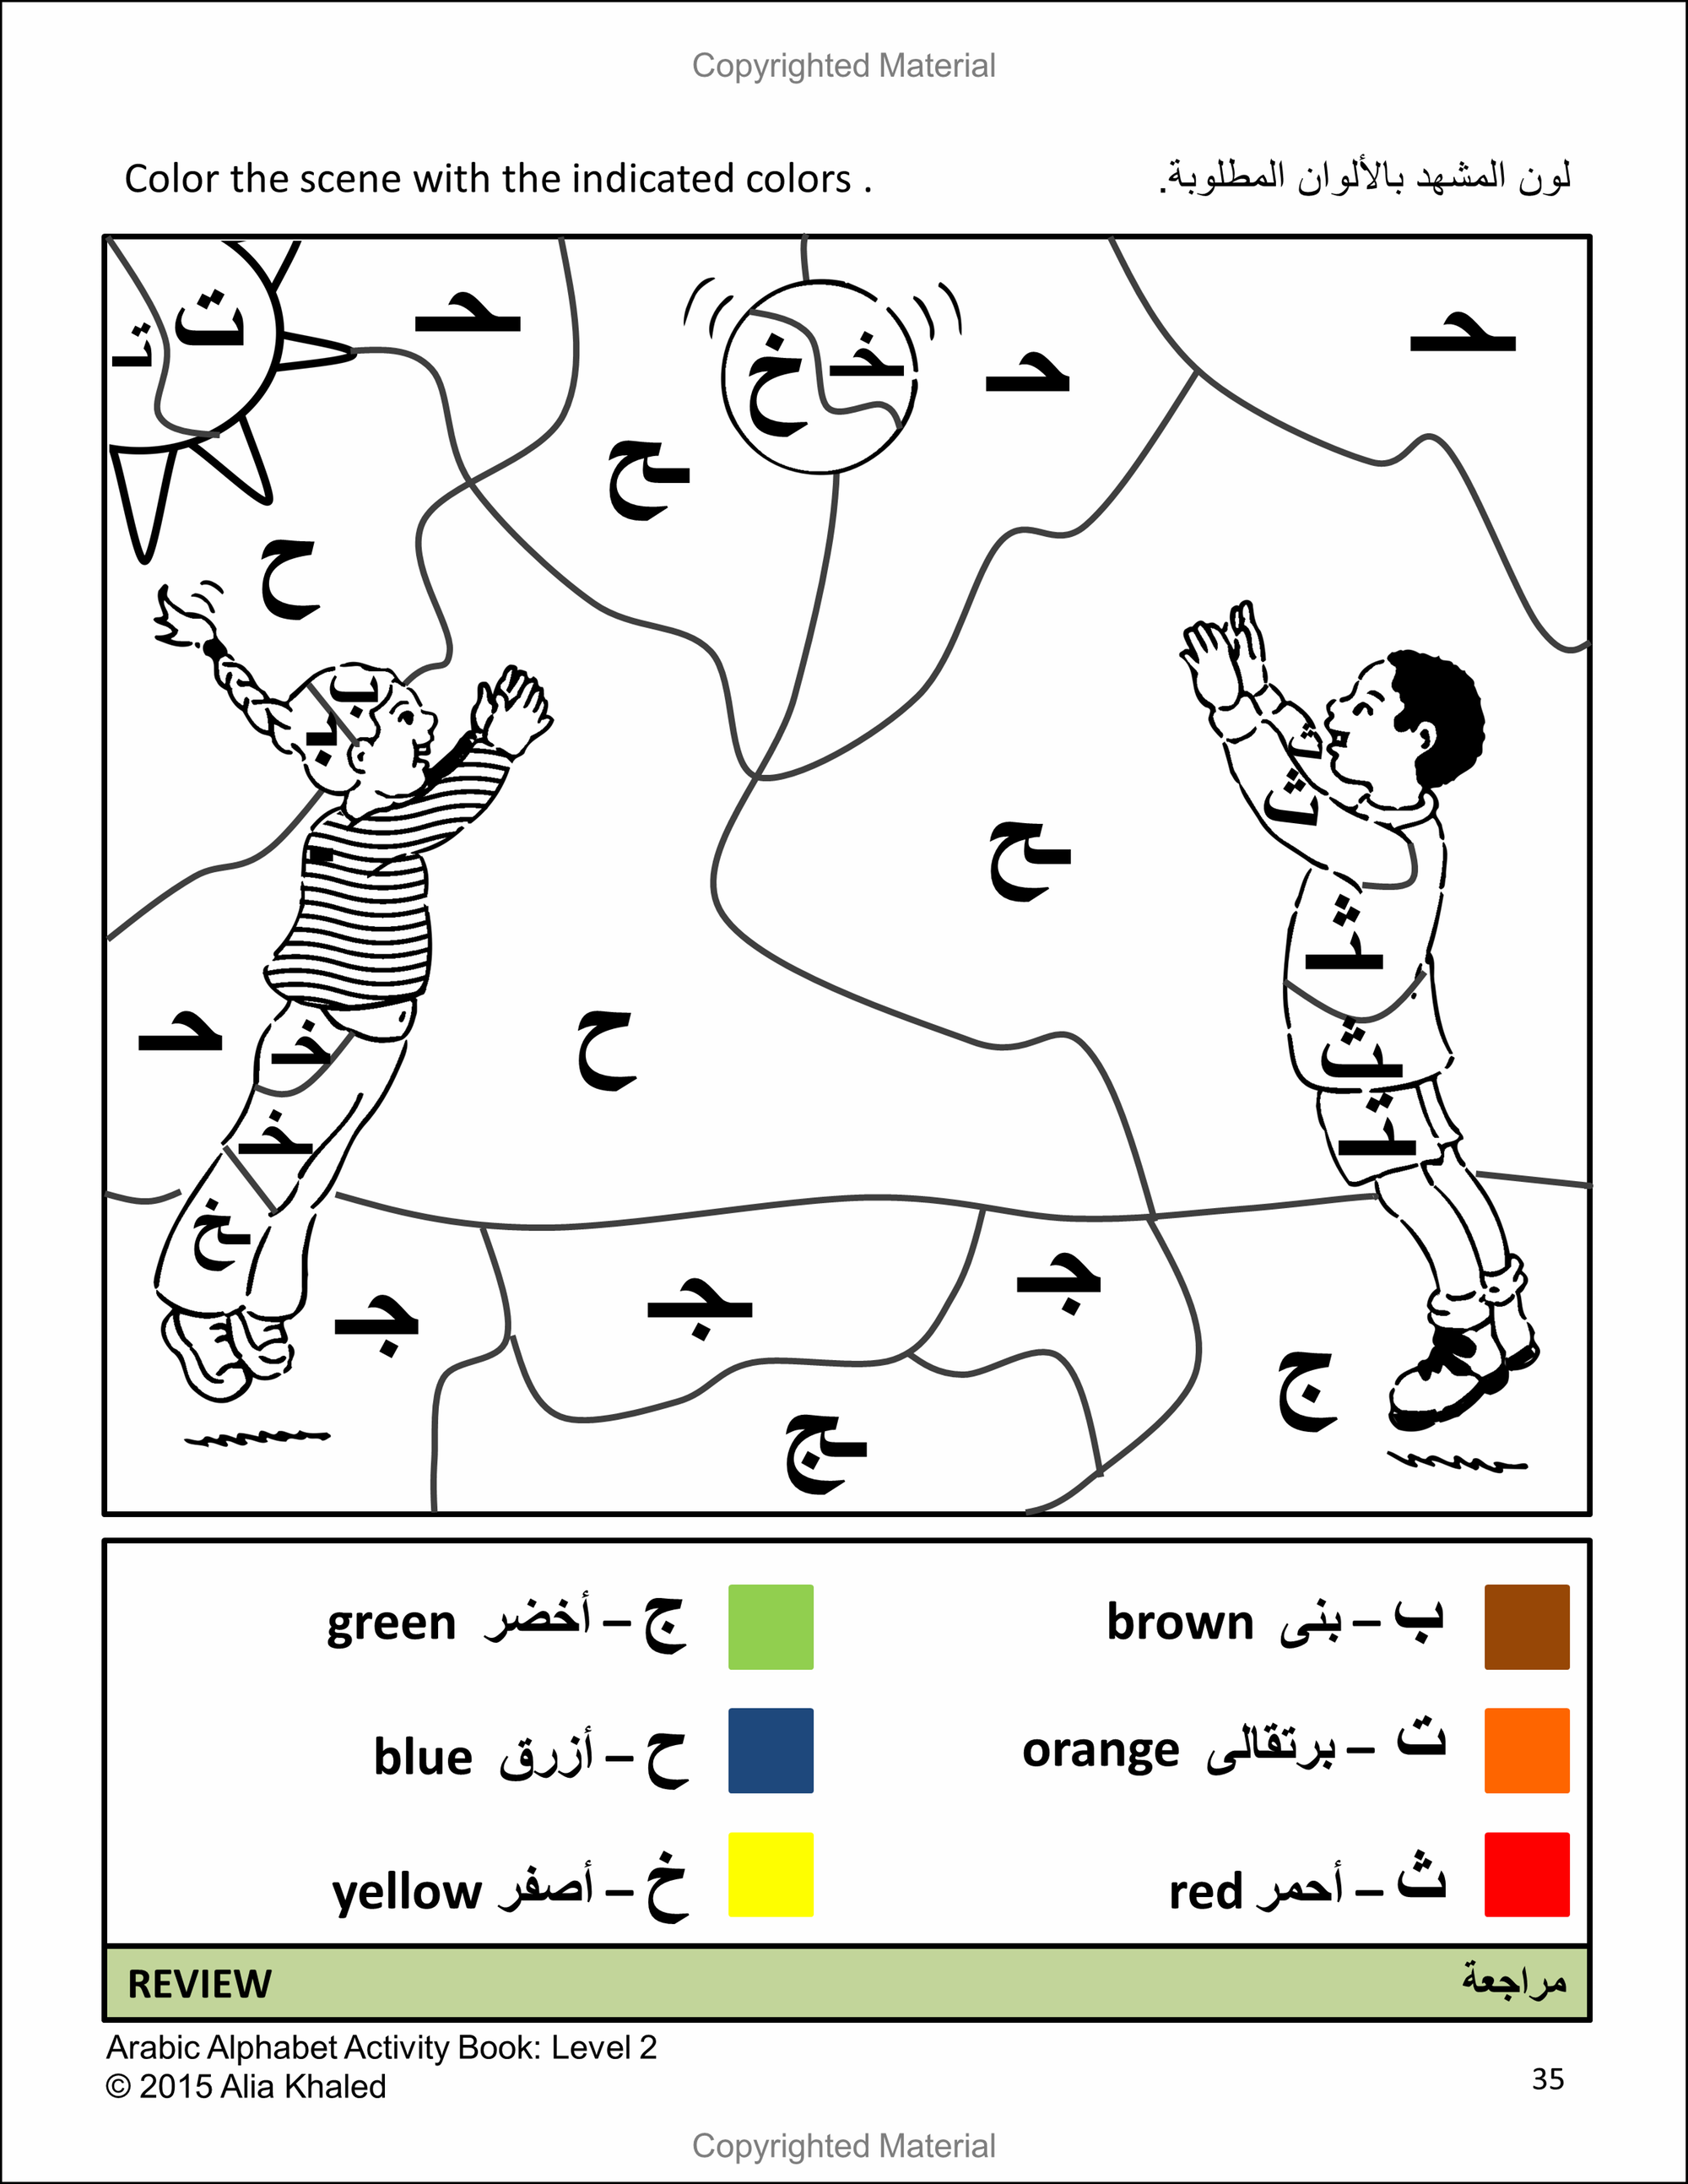 Arabic Alphabet Activity Book Level 2 (Colored Edition